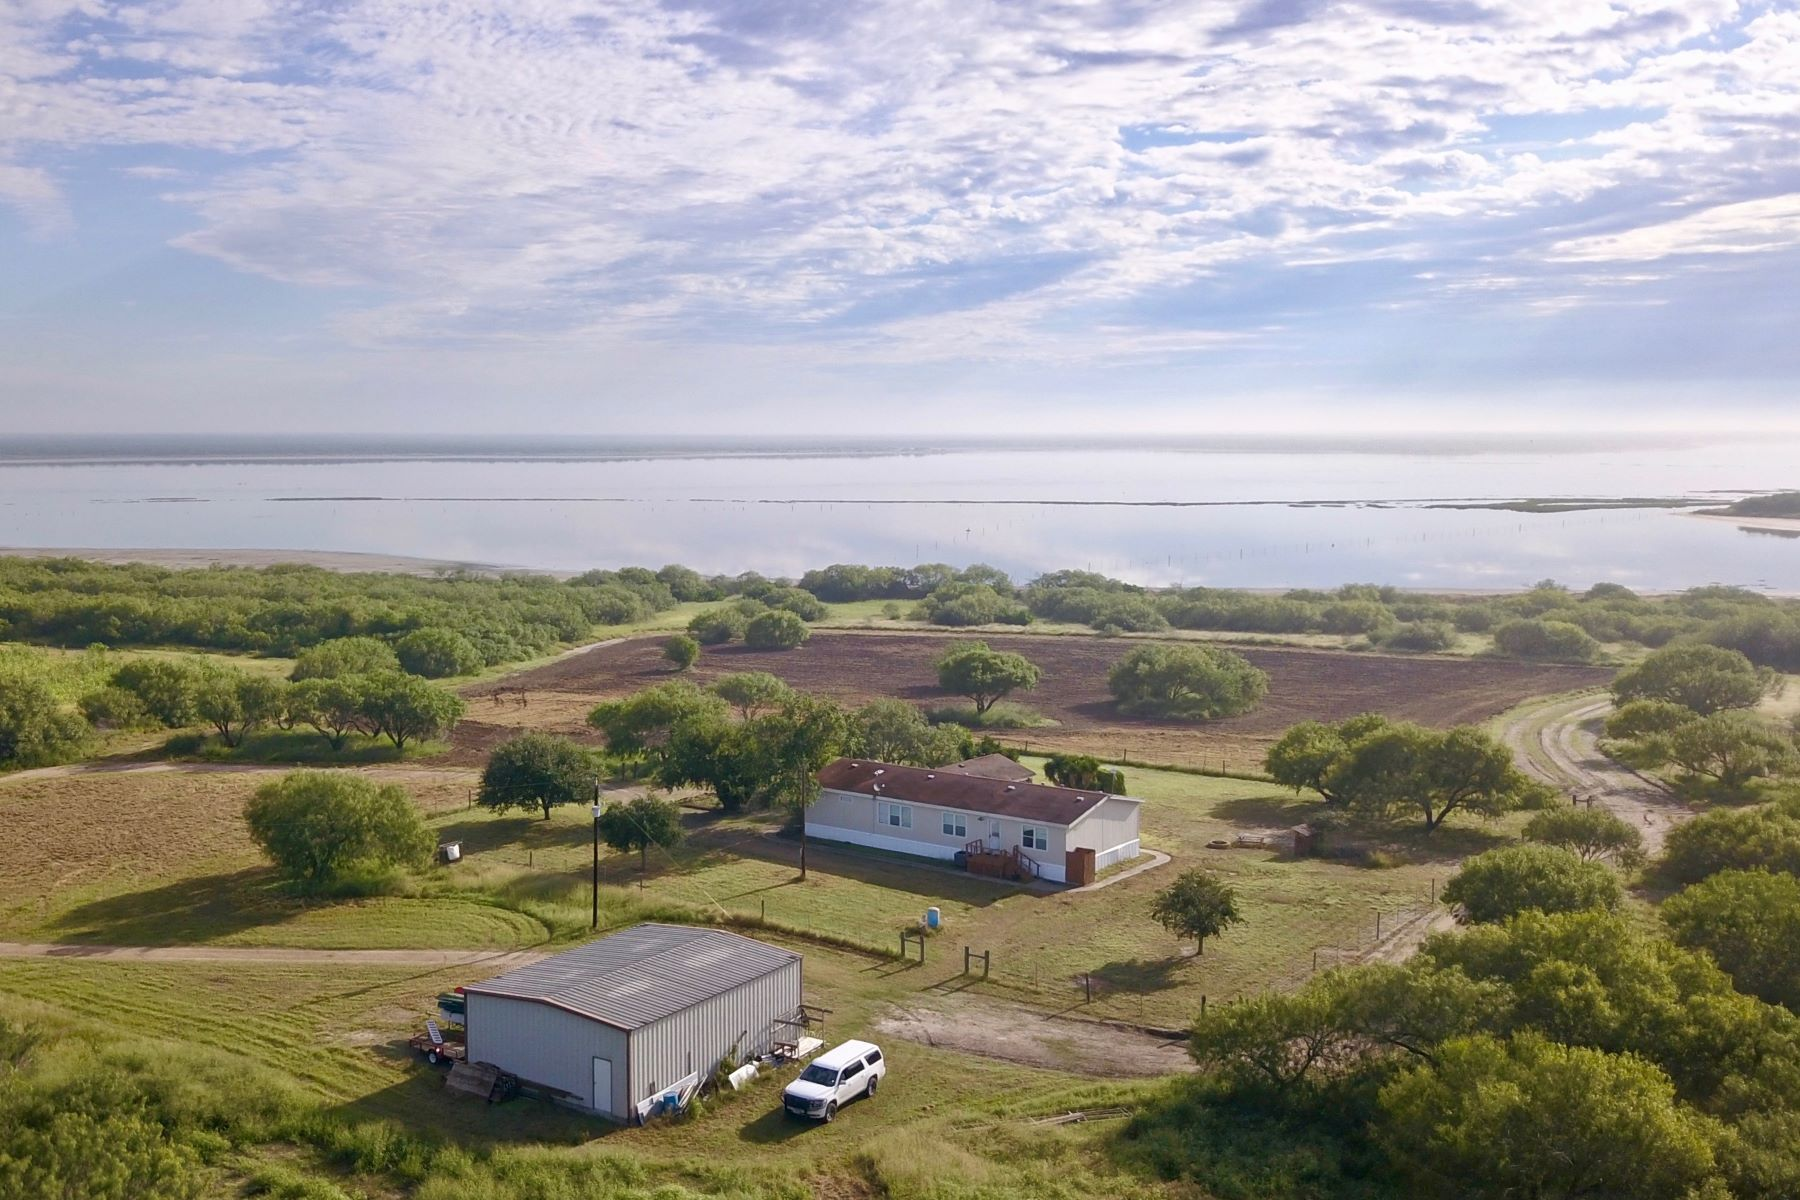 Farm / Ranch / Plantation for Sale at 540+/- Acres Baffin Bay Ranch , Kingsville, TX 78379 540+/- Acres Baffin Bay Ranch Kingsville, Texas 78379 United States